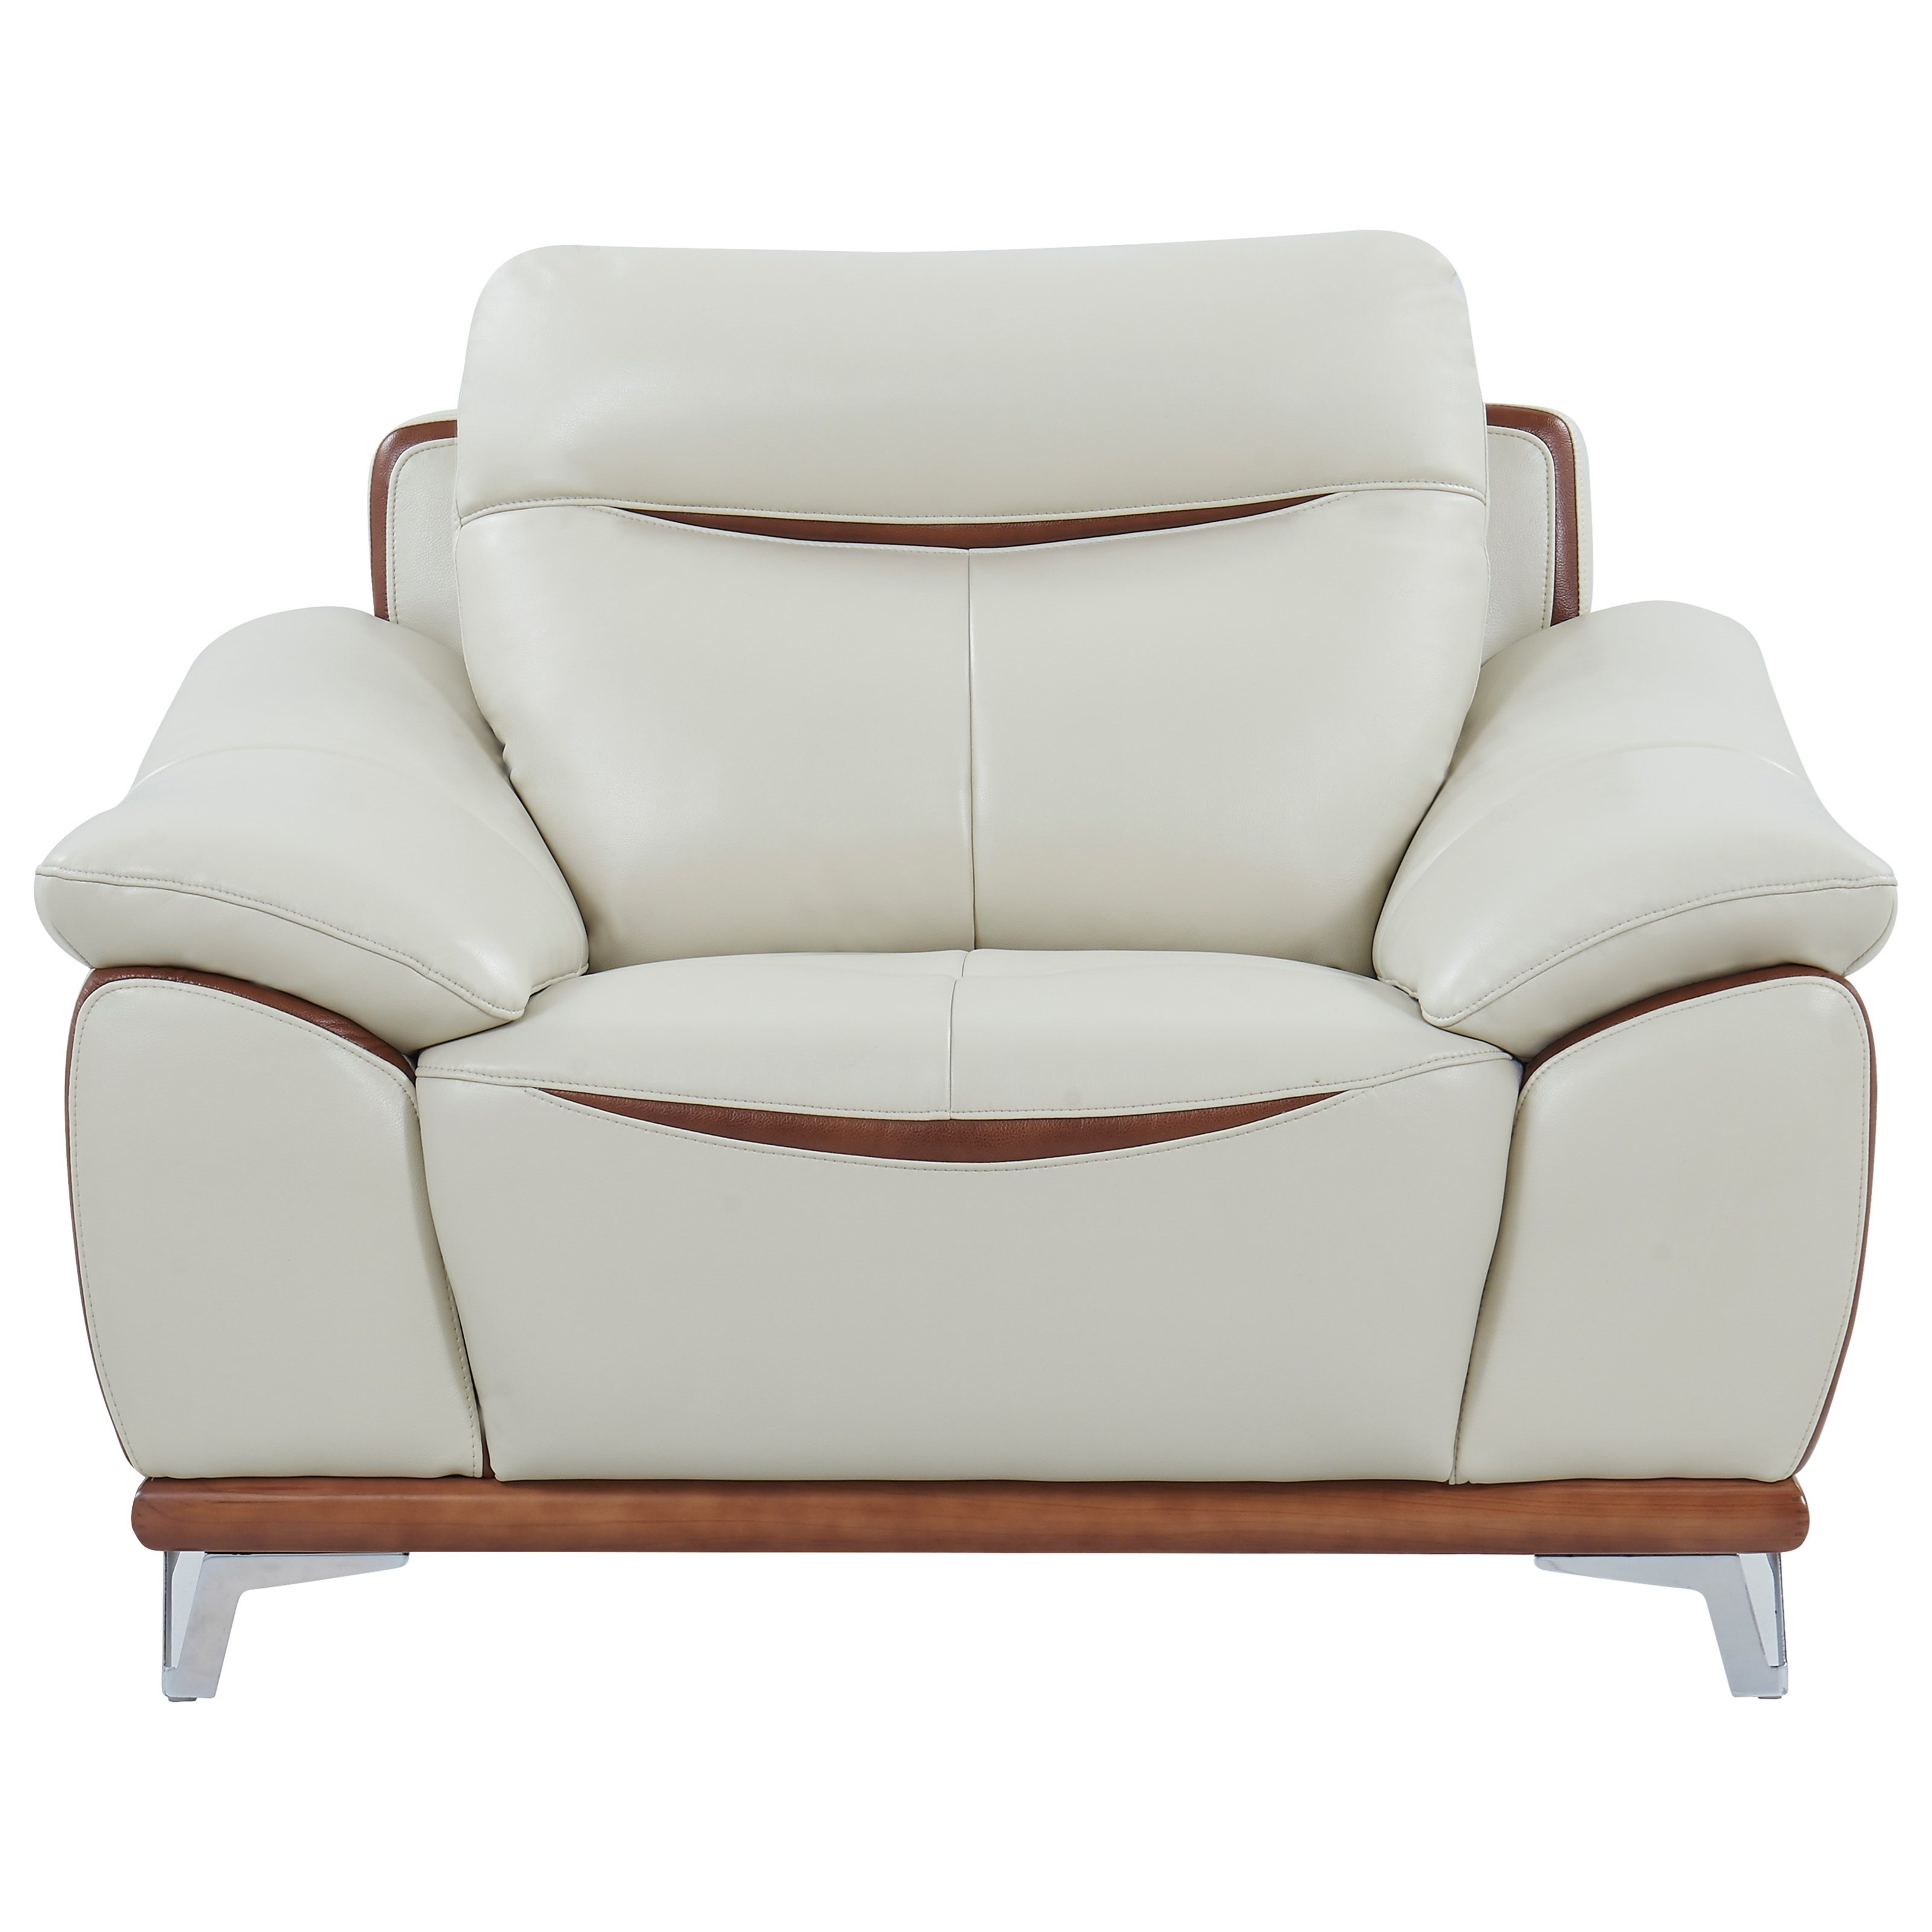 U8351 Chair by Global Furniture at Dream Home Interiors